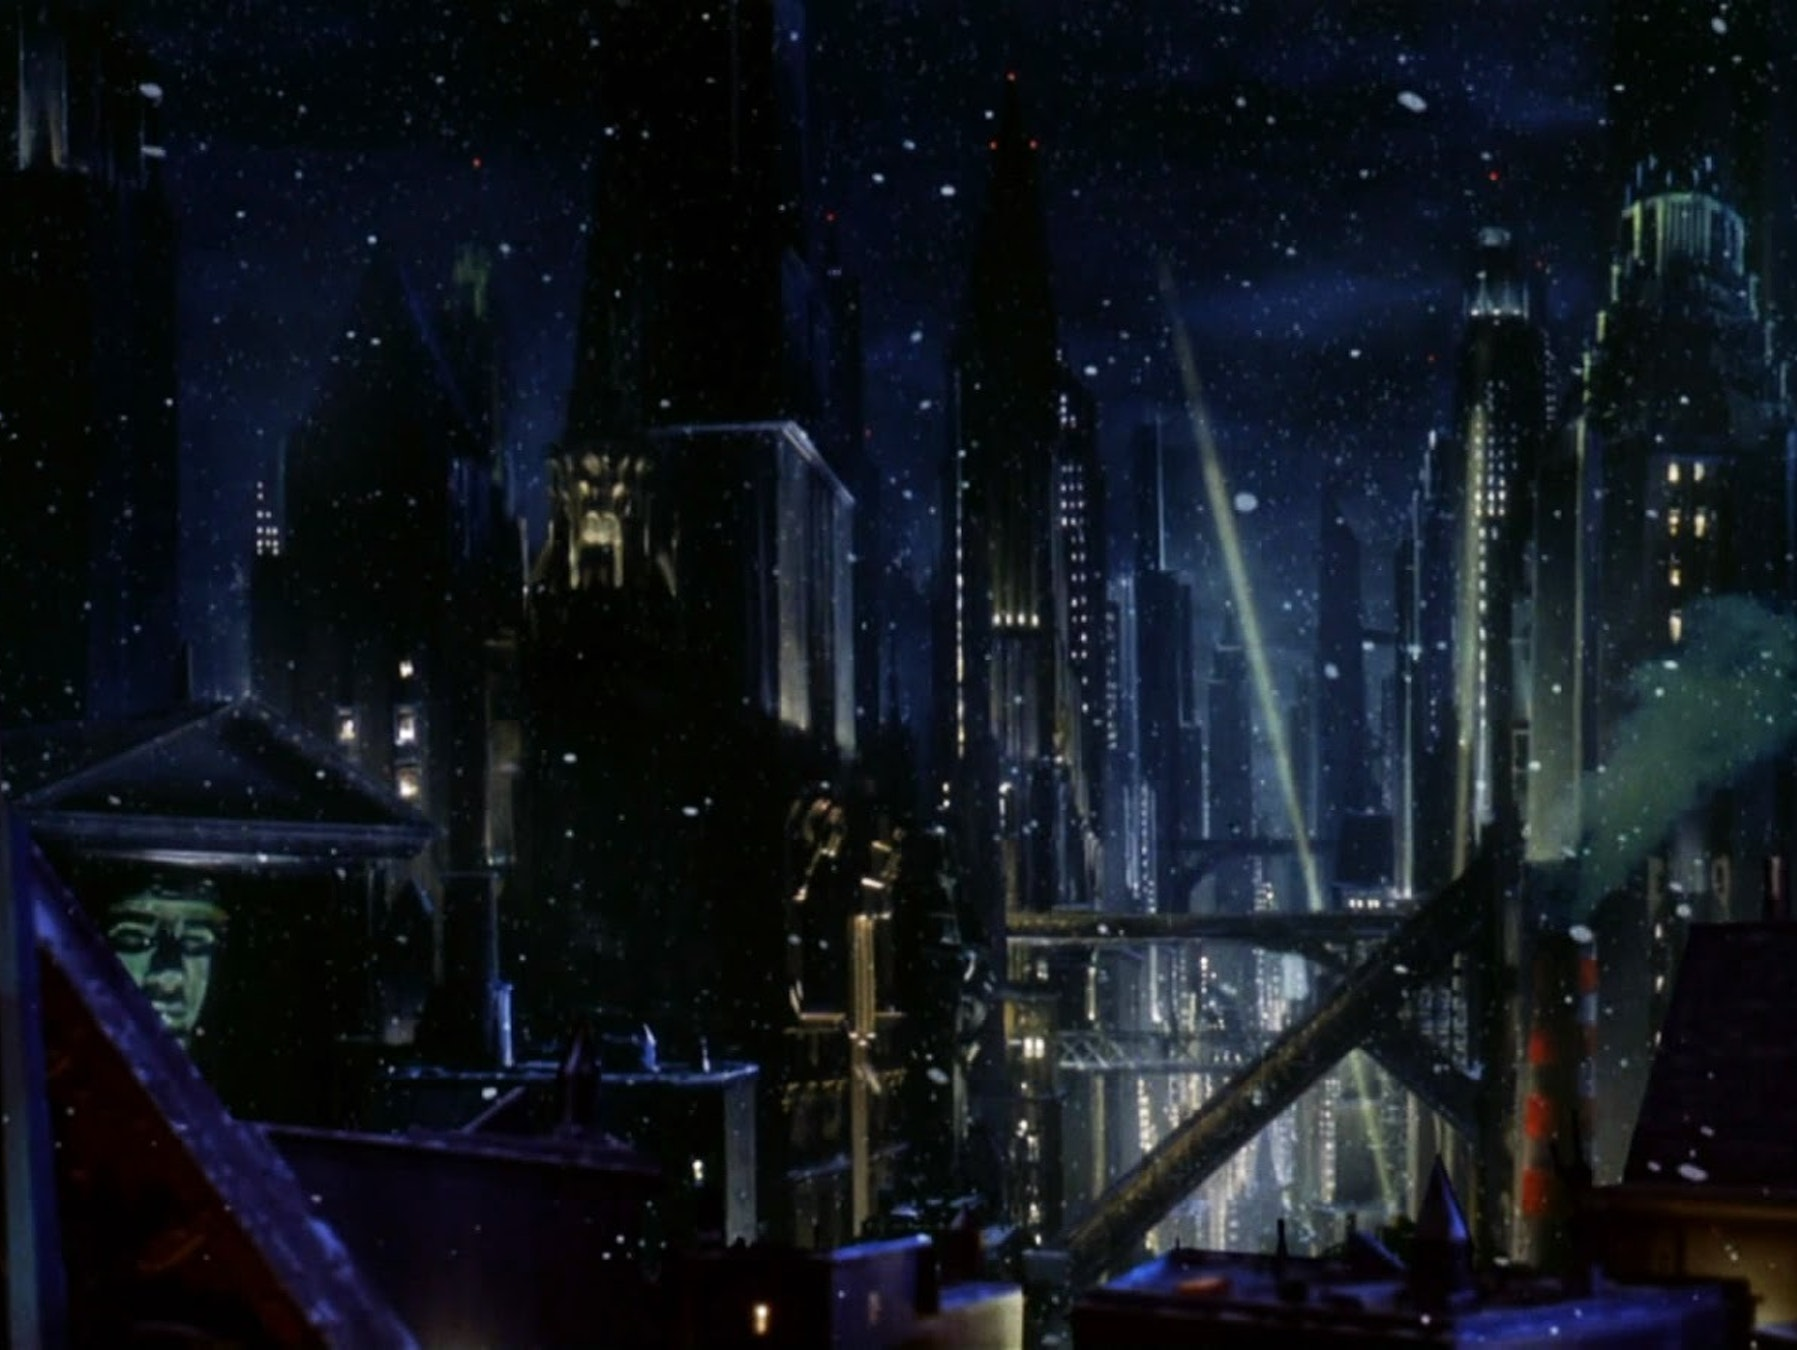 The Gotham of 'Batman Returns' was made possible with miniatures and matte paintings, just as digital effects was also becoming more widespread.